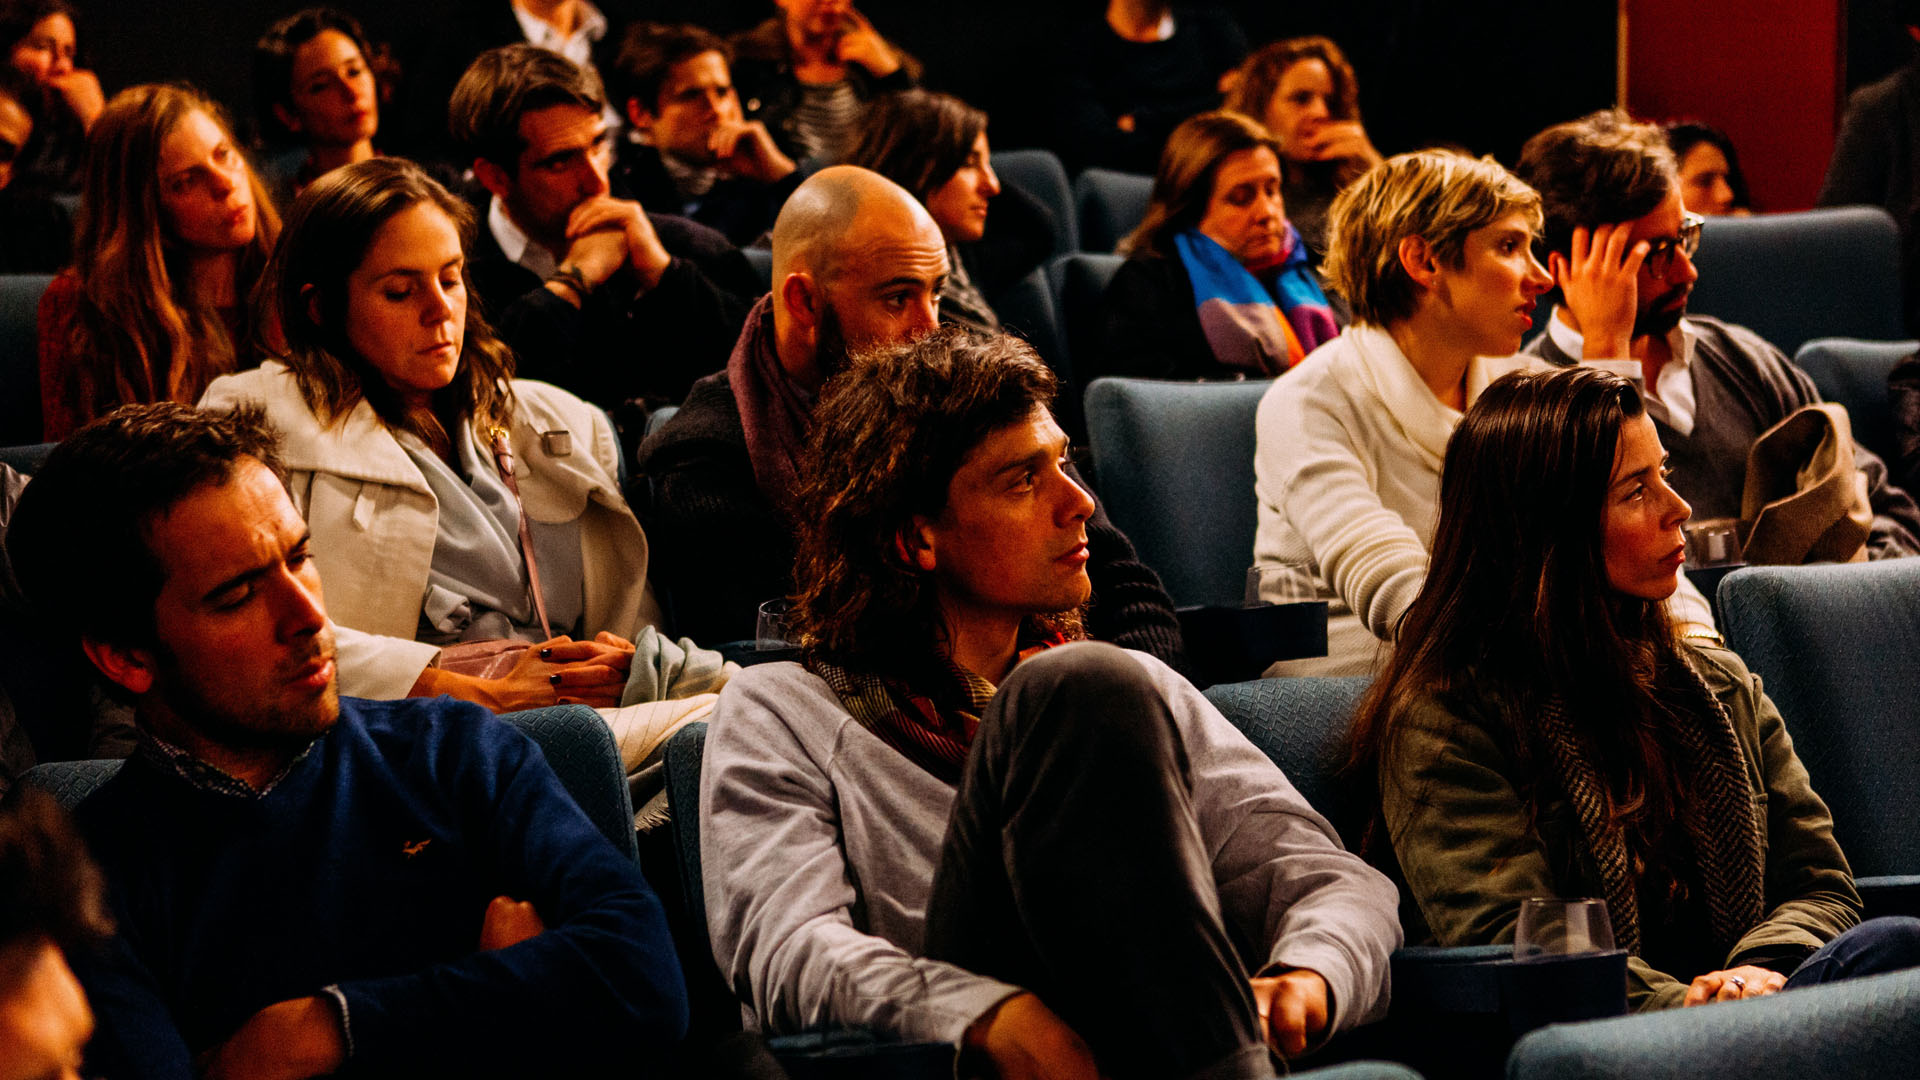 Photograph of several people sat in audience seats watching something